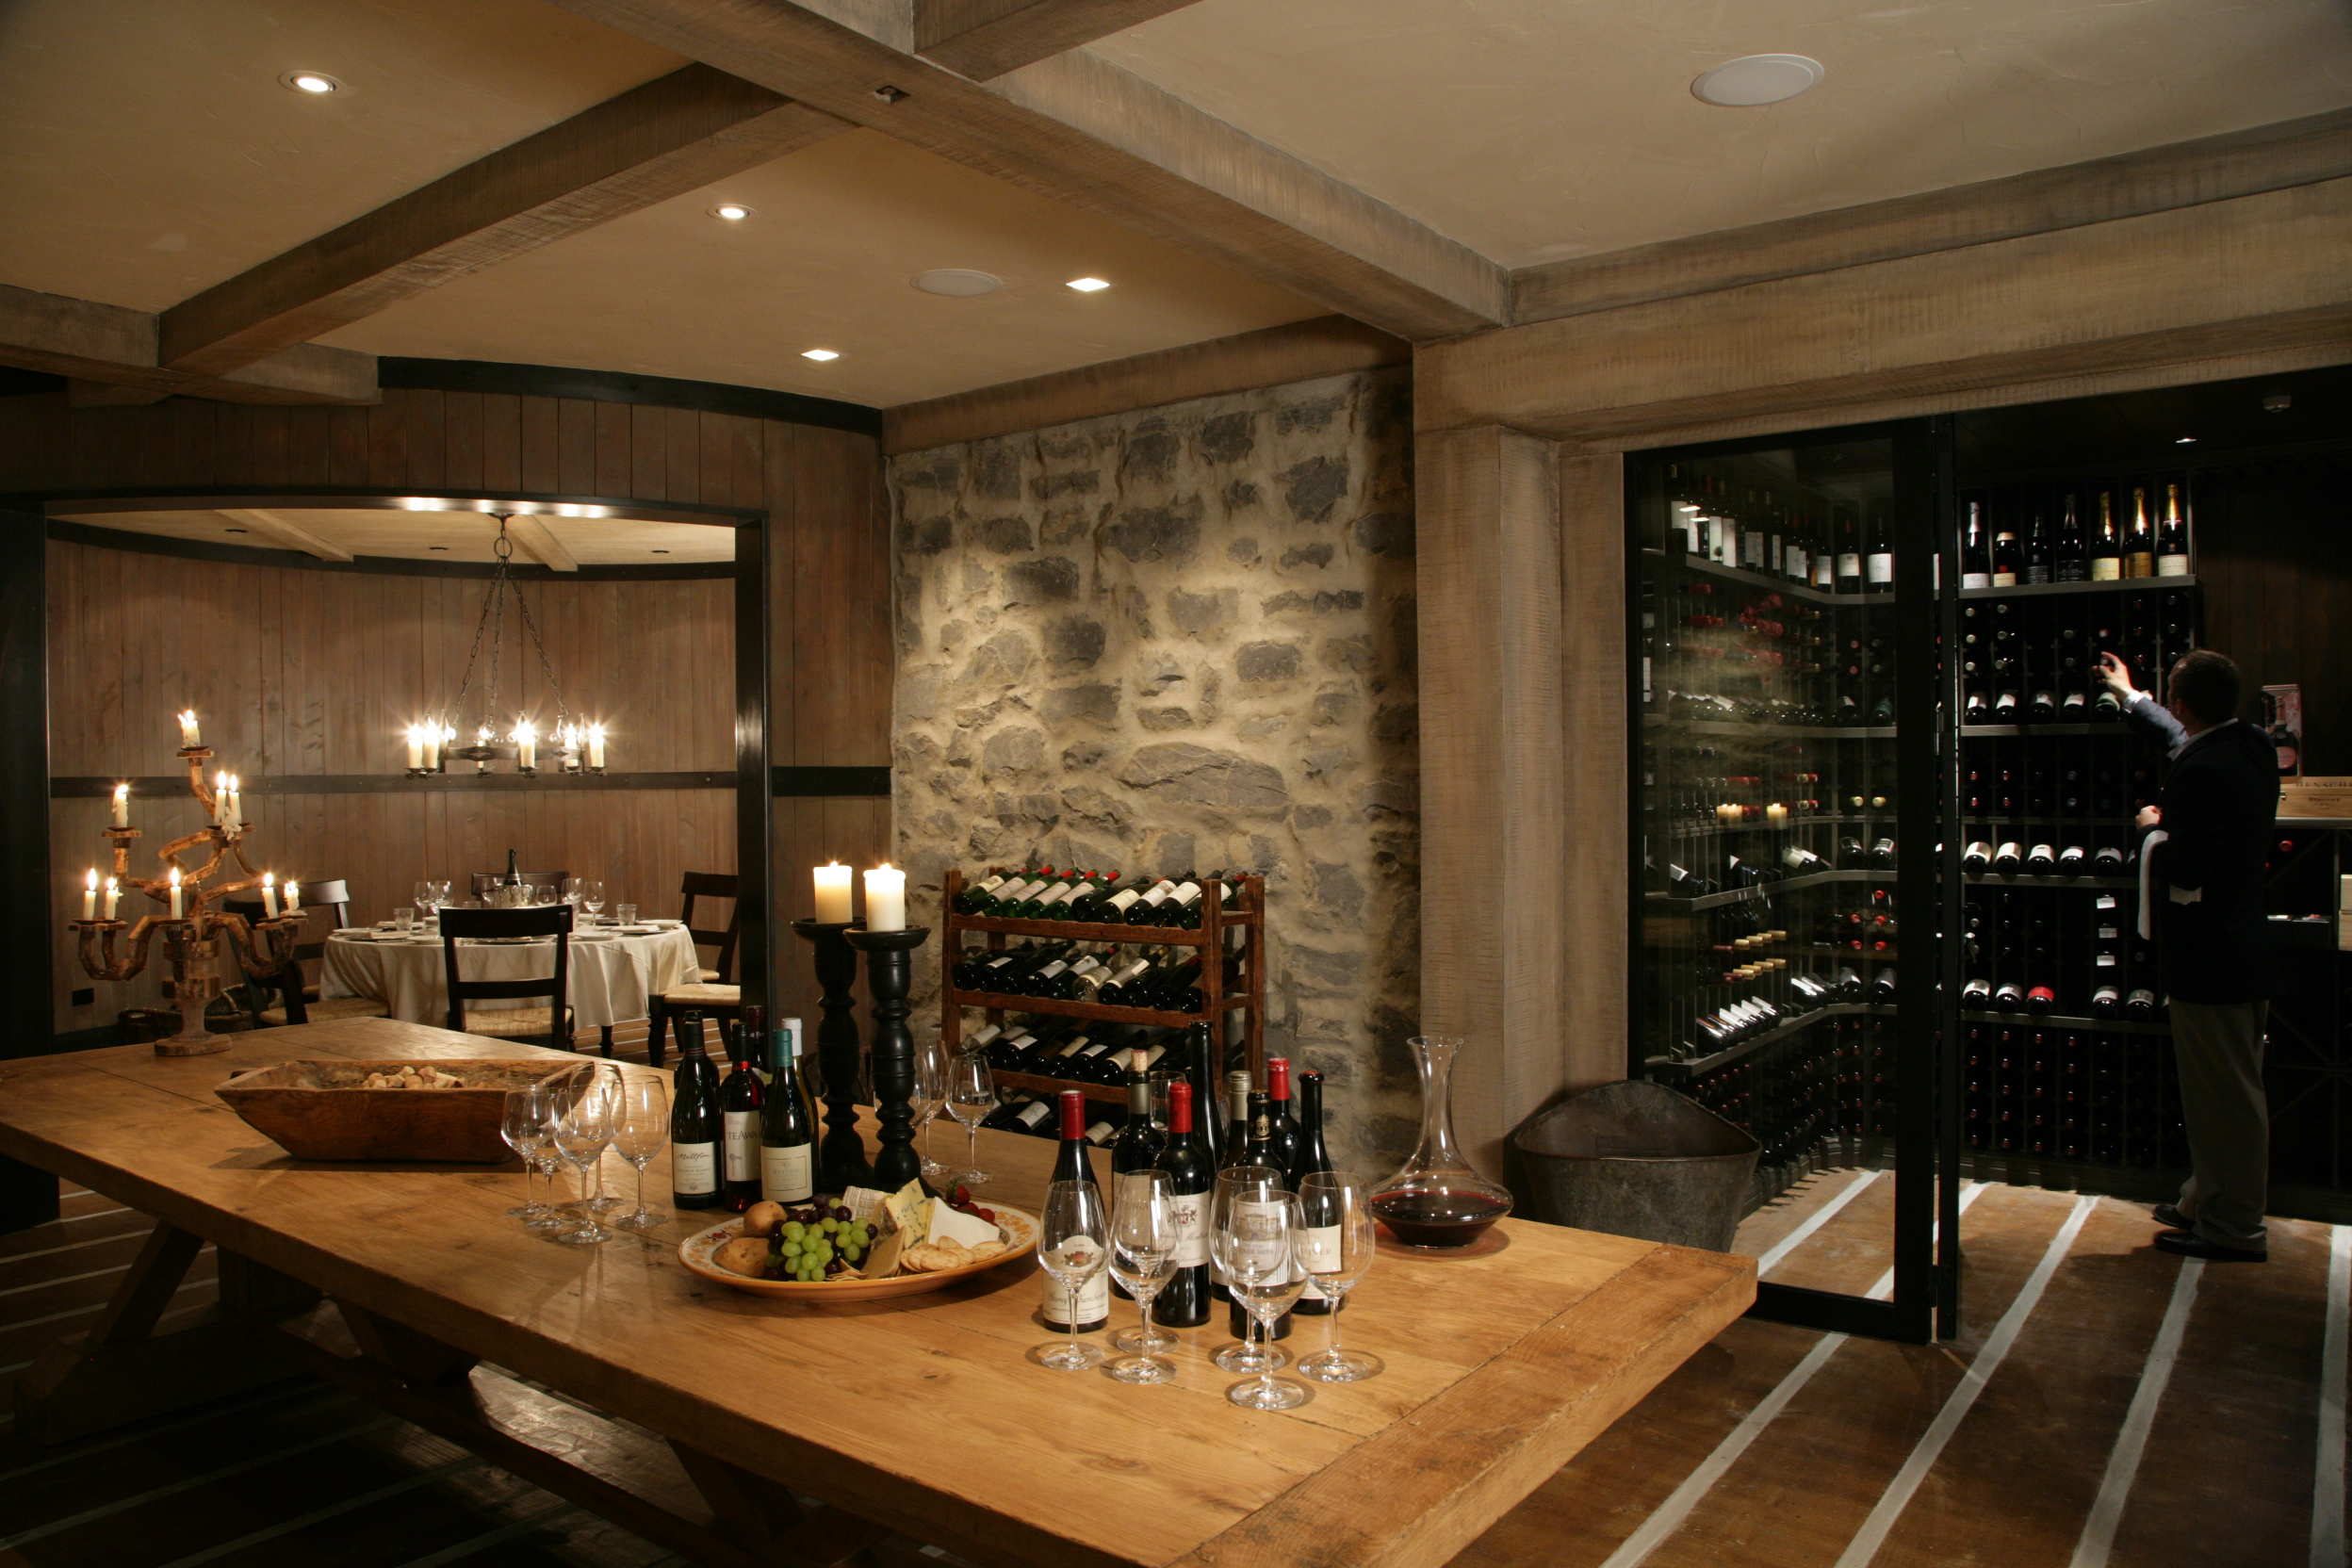 Wine Cellar at Cape Kidnappers, New Zealand ©Farm at Cape Kidnappers